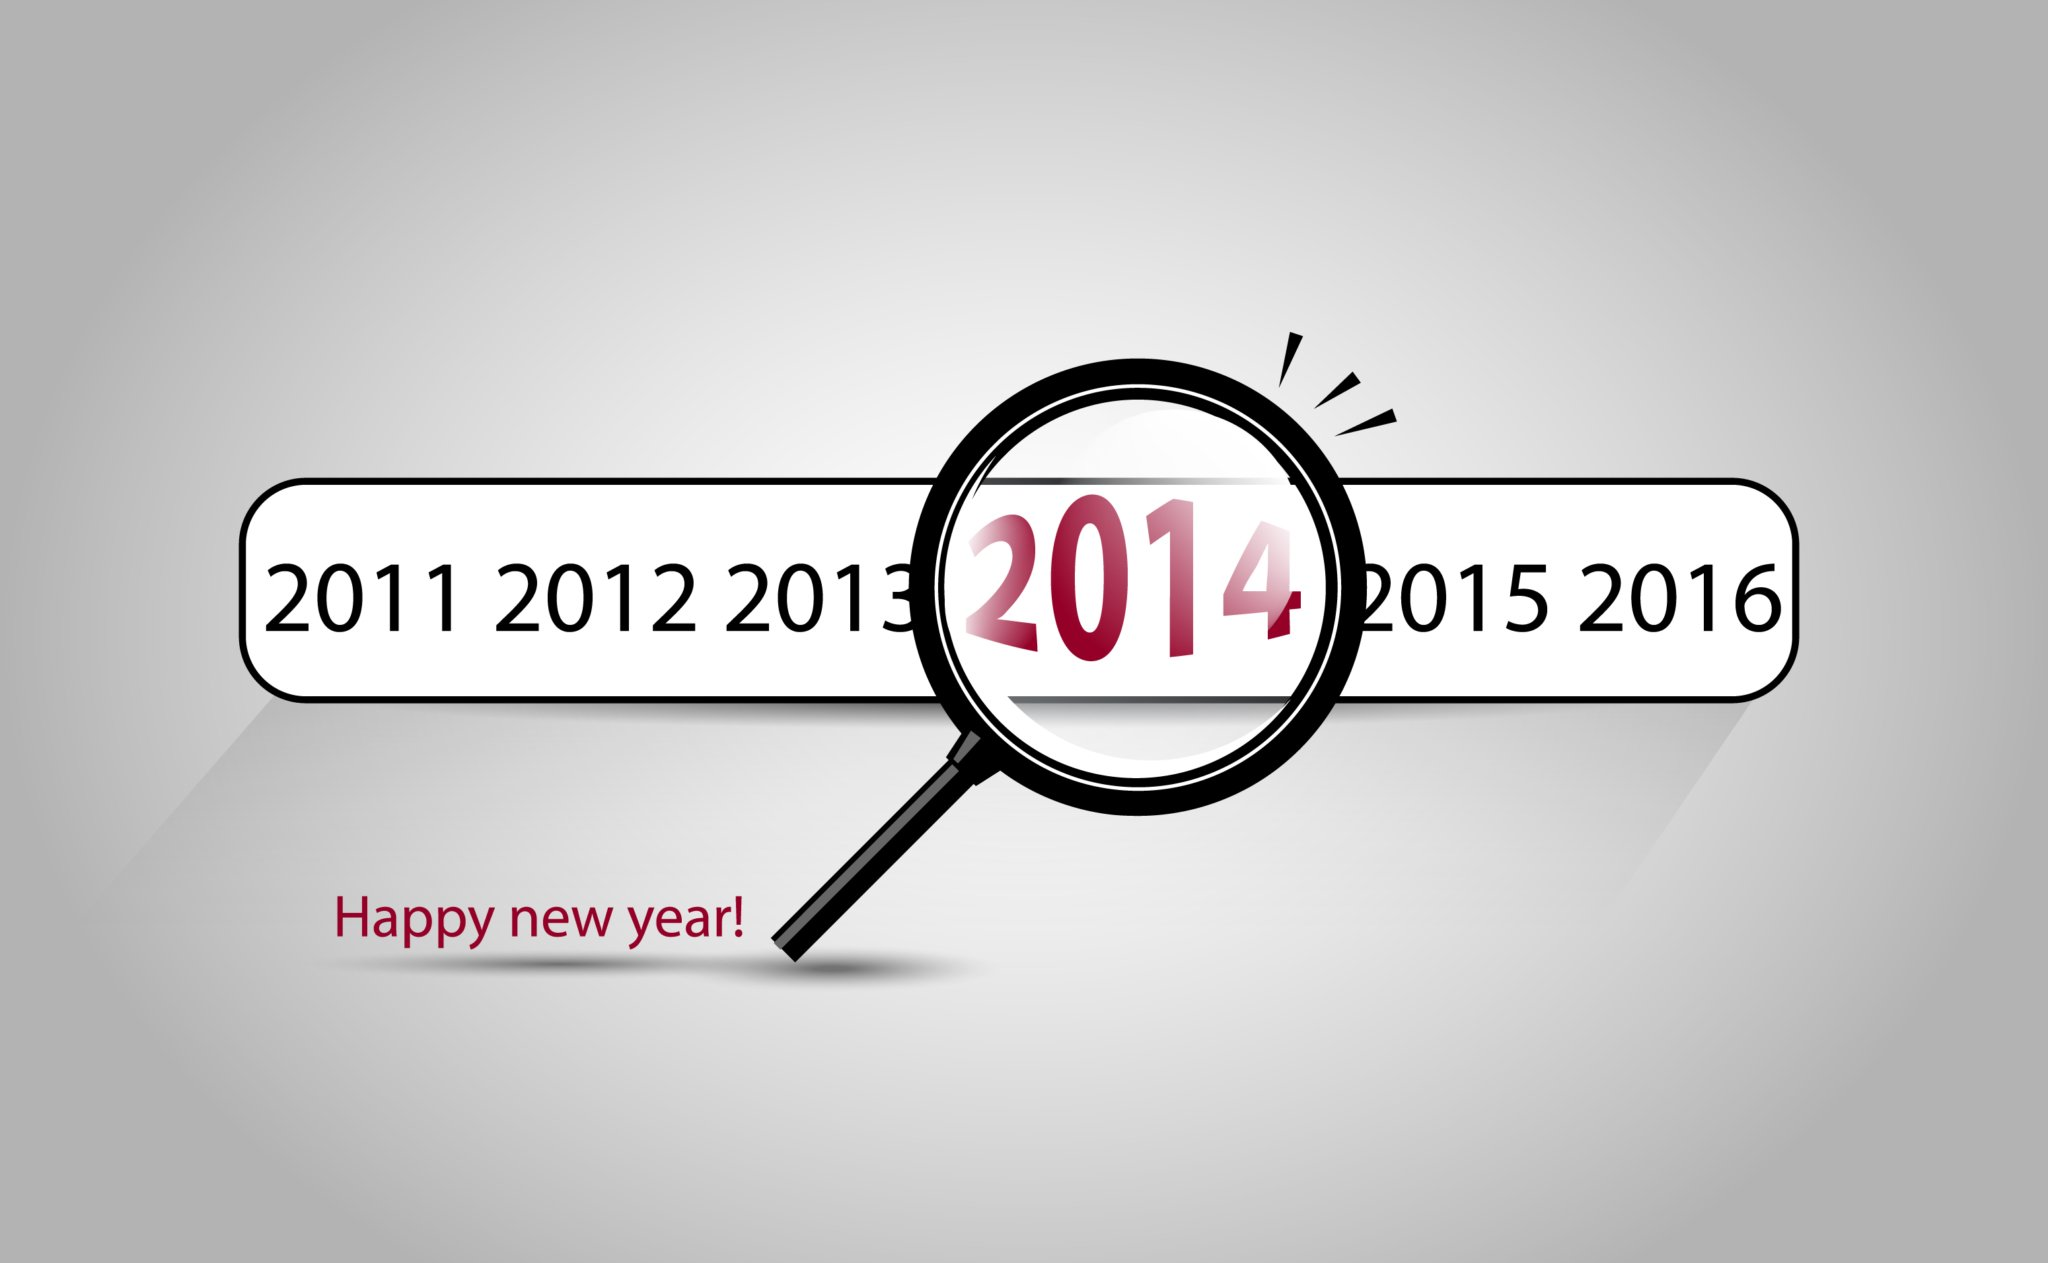 2014 Small Business Search Marketing Year In Review